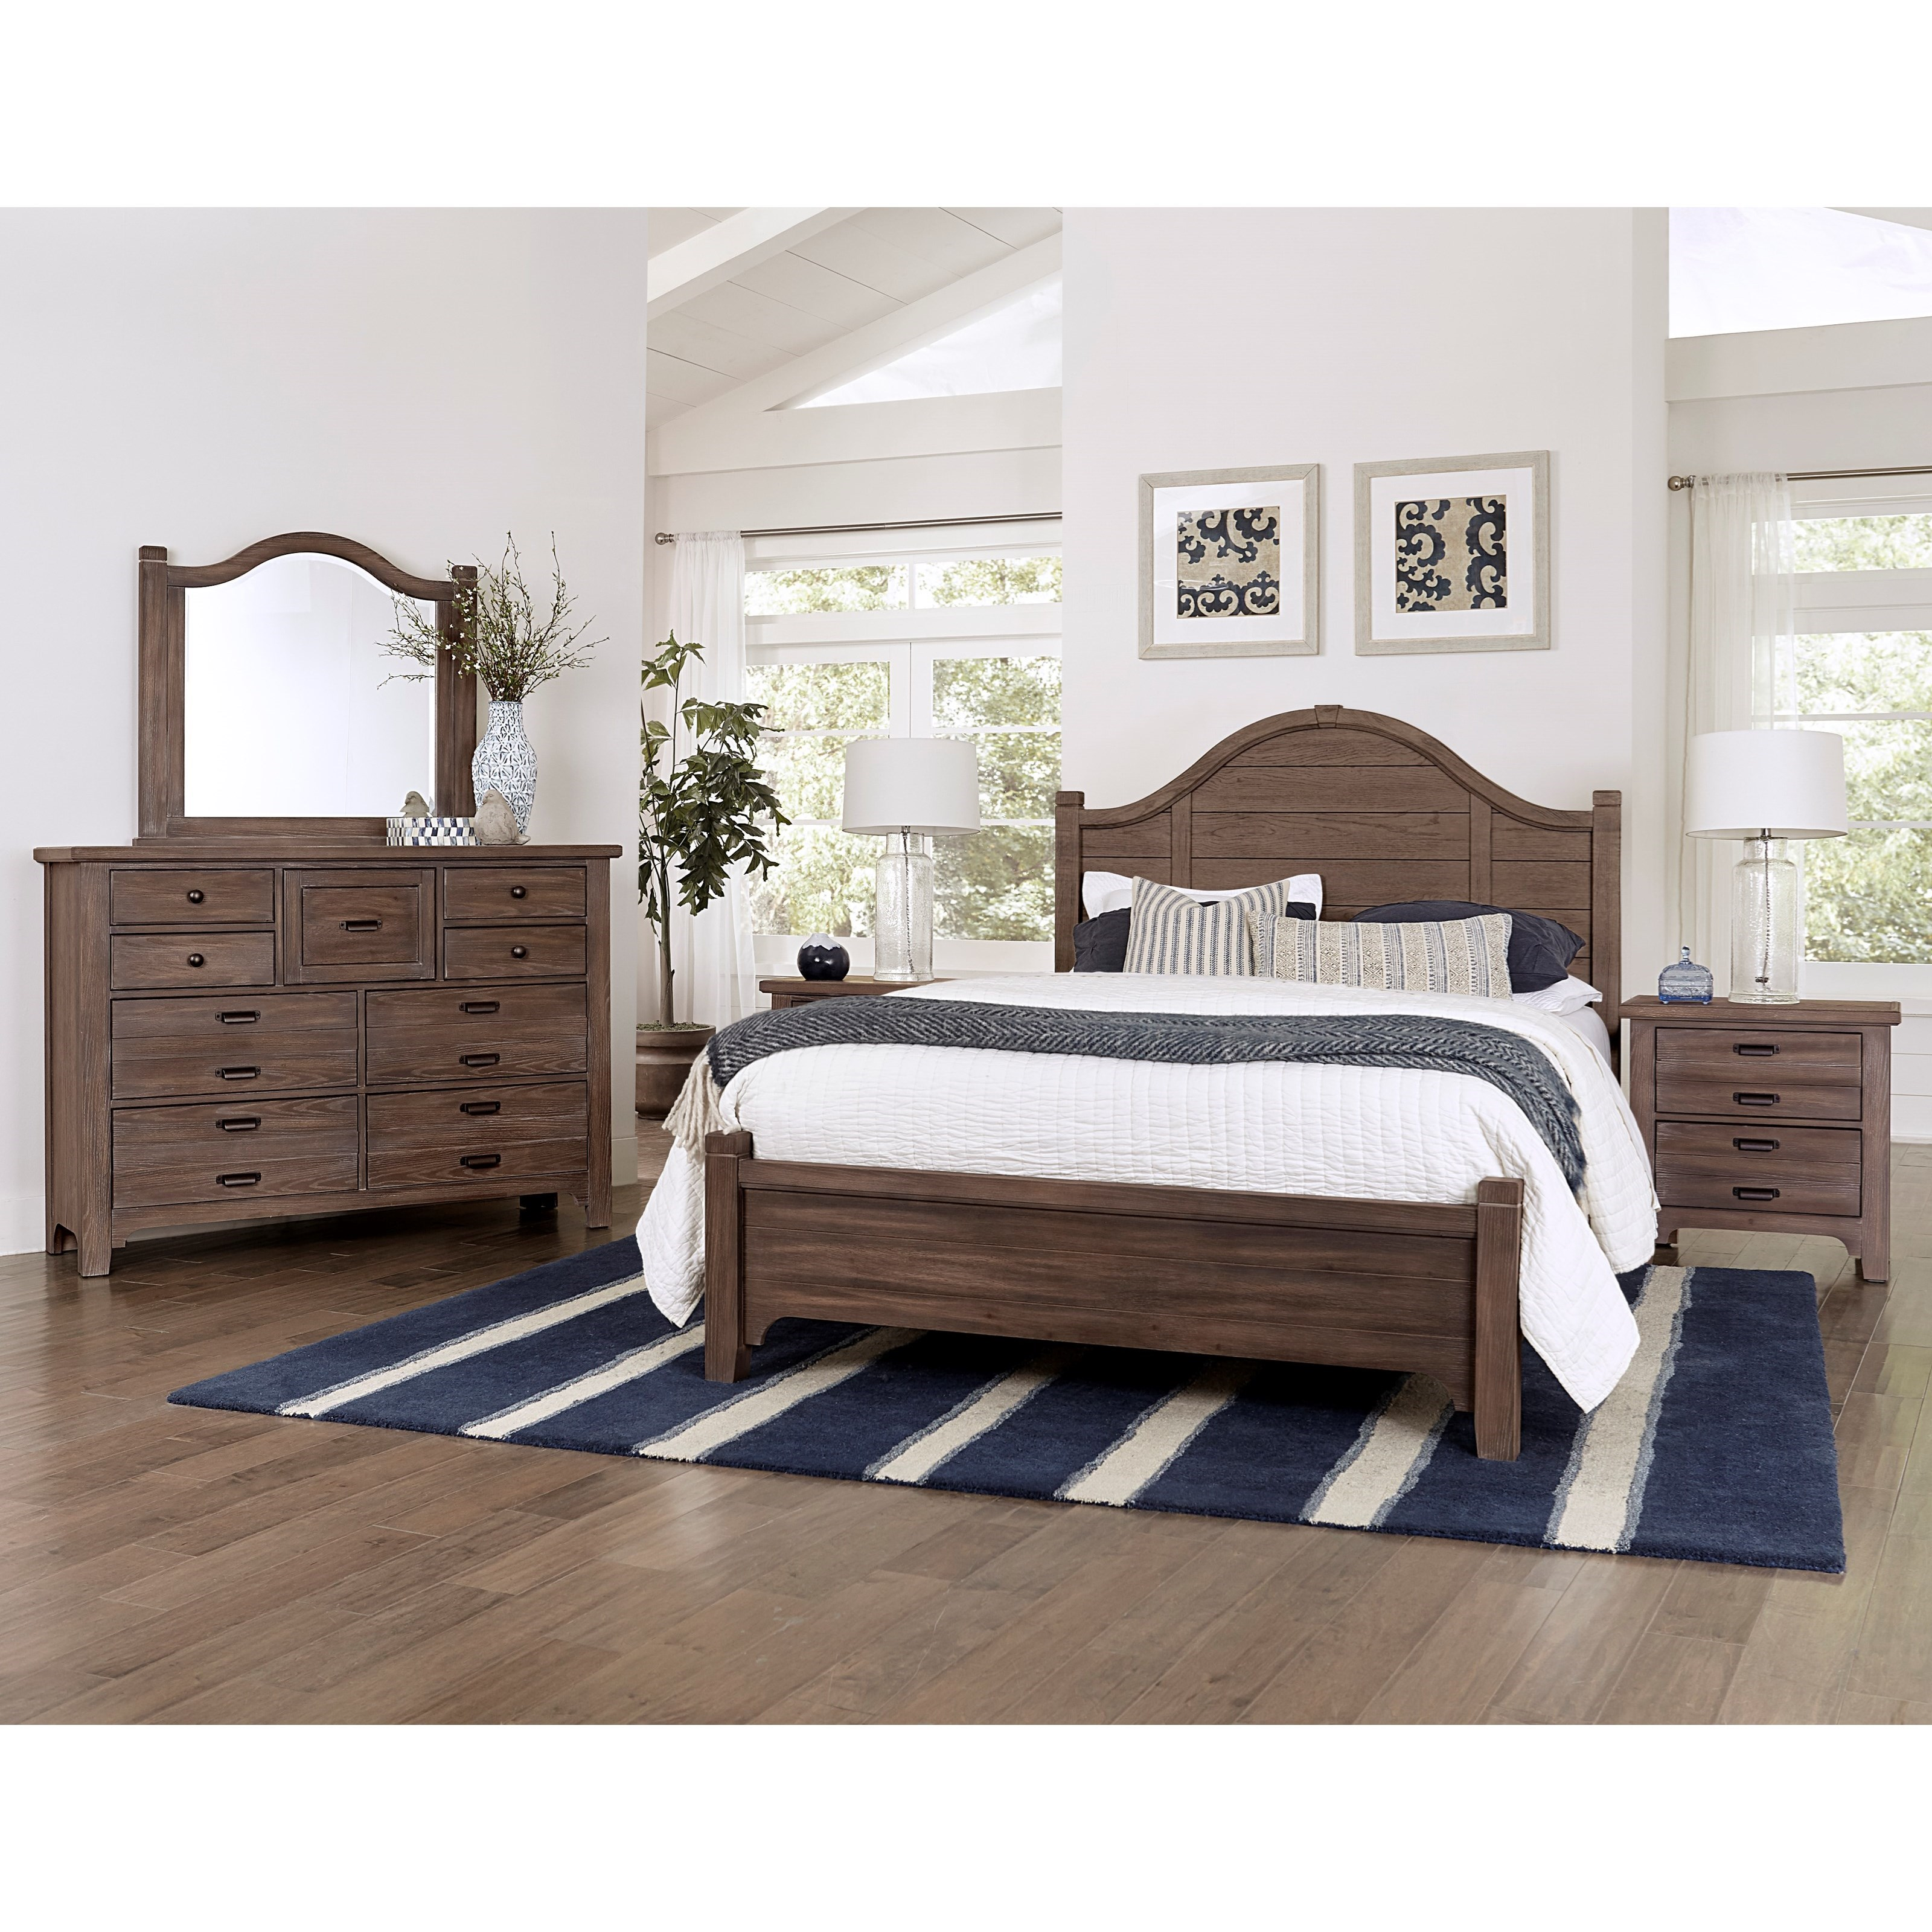 Bungalow Queen Bedroom Group by Vaughan-Bassett at Crowley Furniture & Mattress